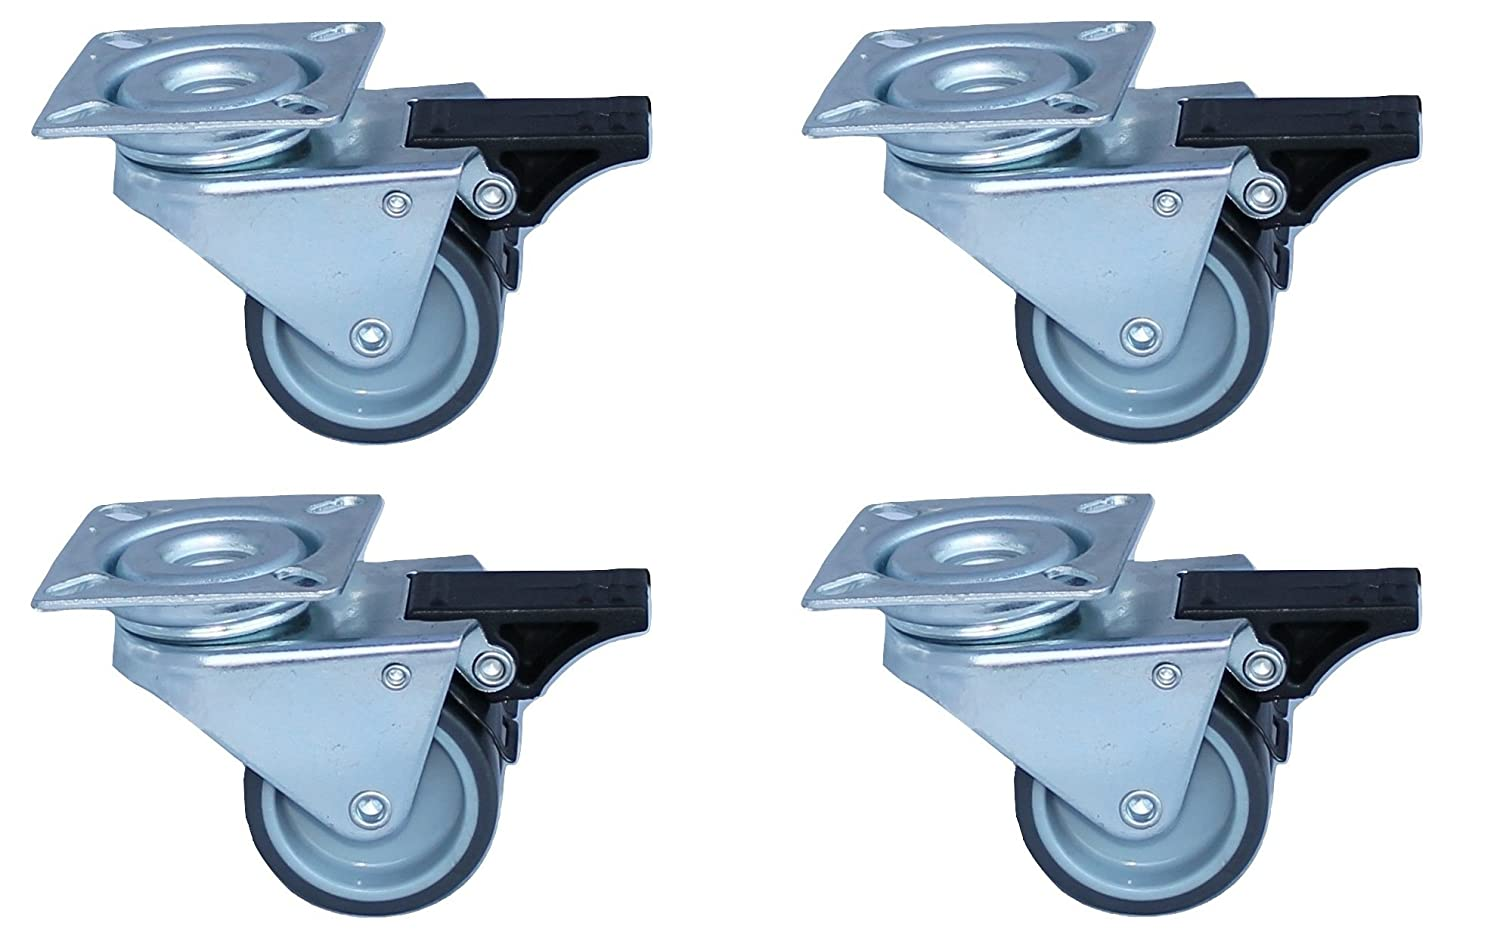 Pack of 4 heavy duty wheels with brake, 300kg capacity, Caster wheels, wheel diameter 50mm Artecsis